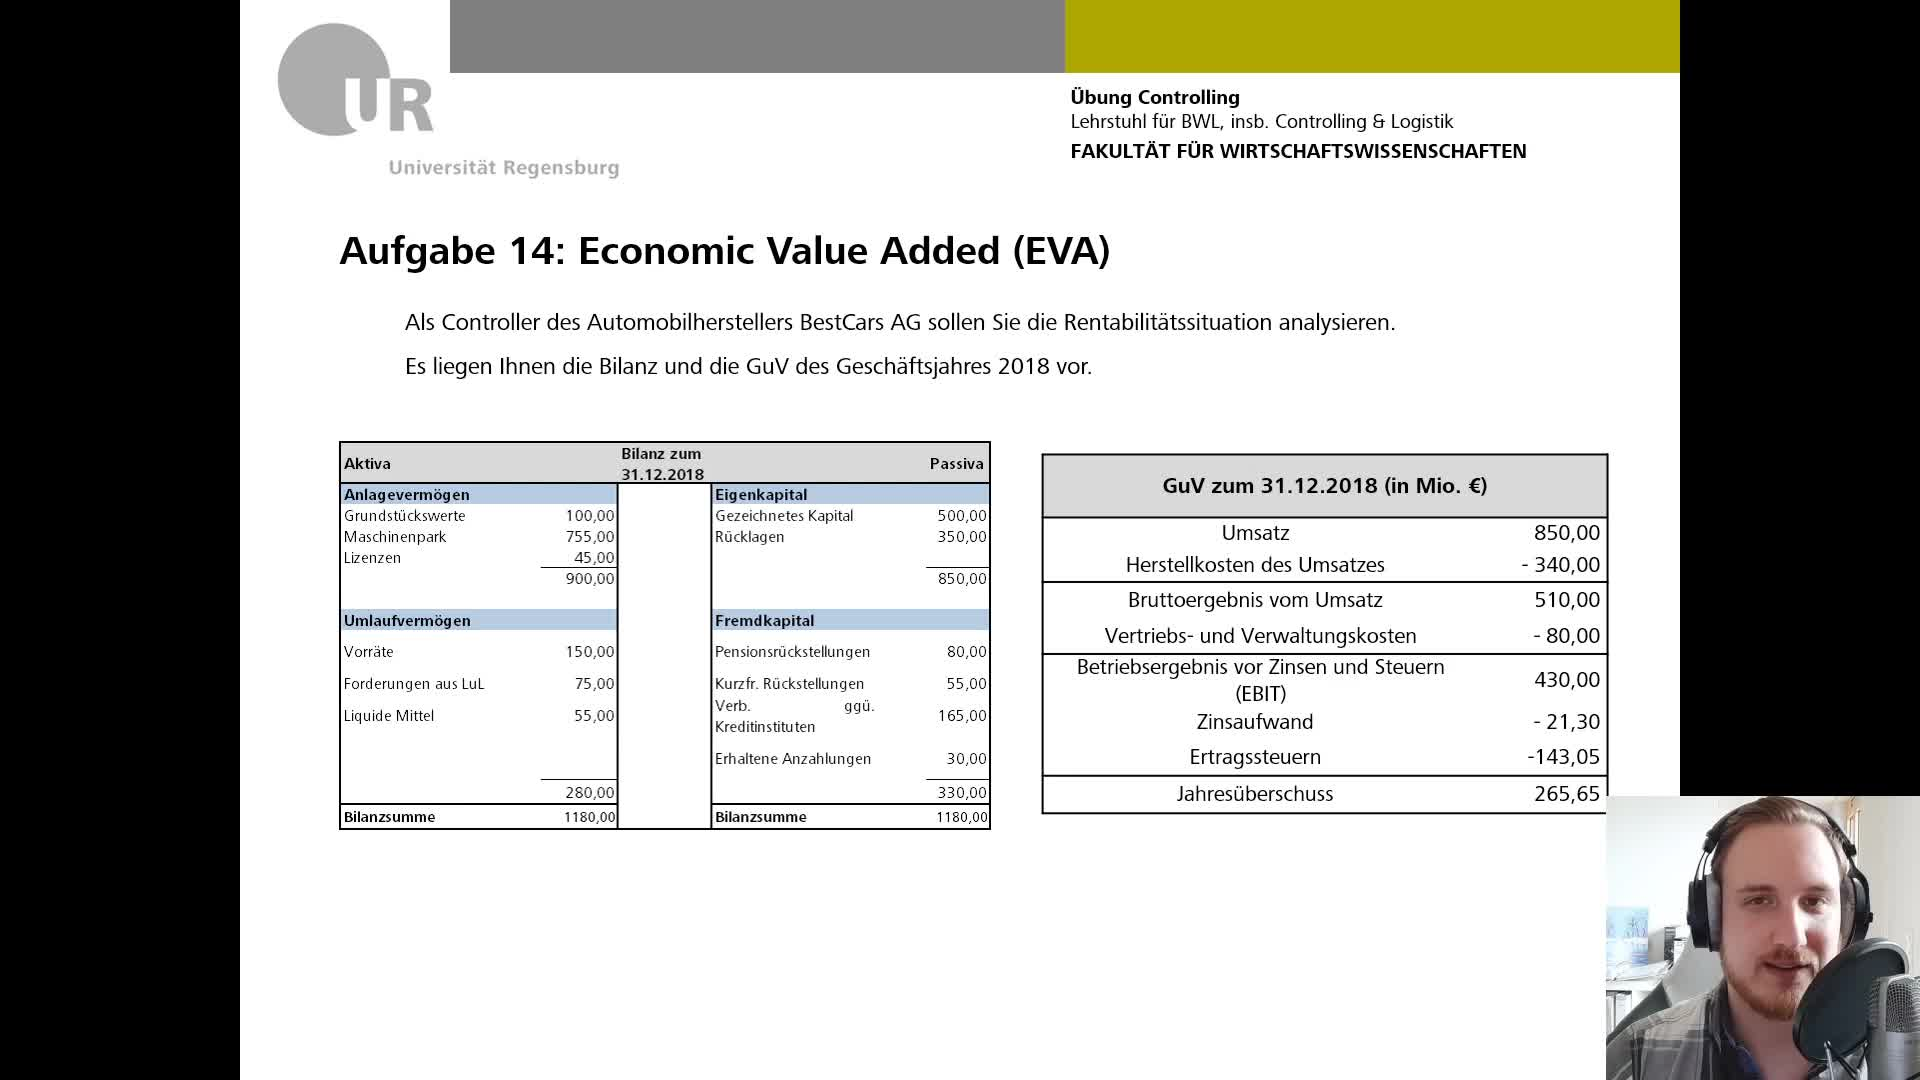 CO Übung VI - Aufgabe 14: Economic Value Added (EVA)